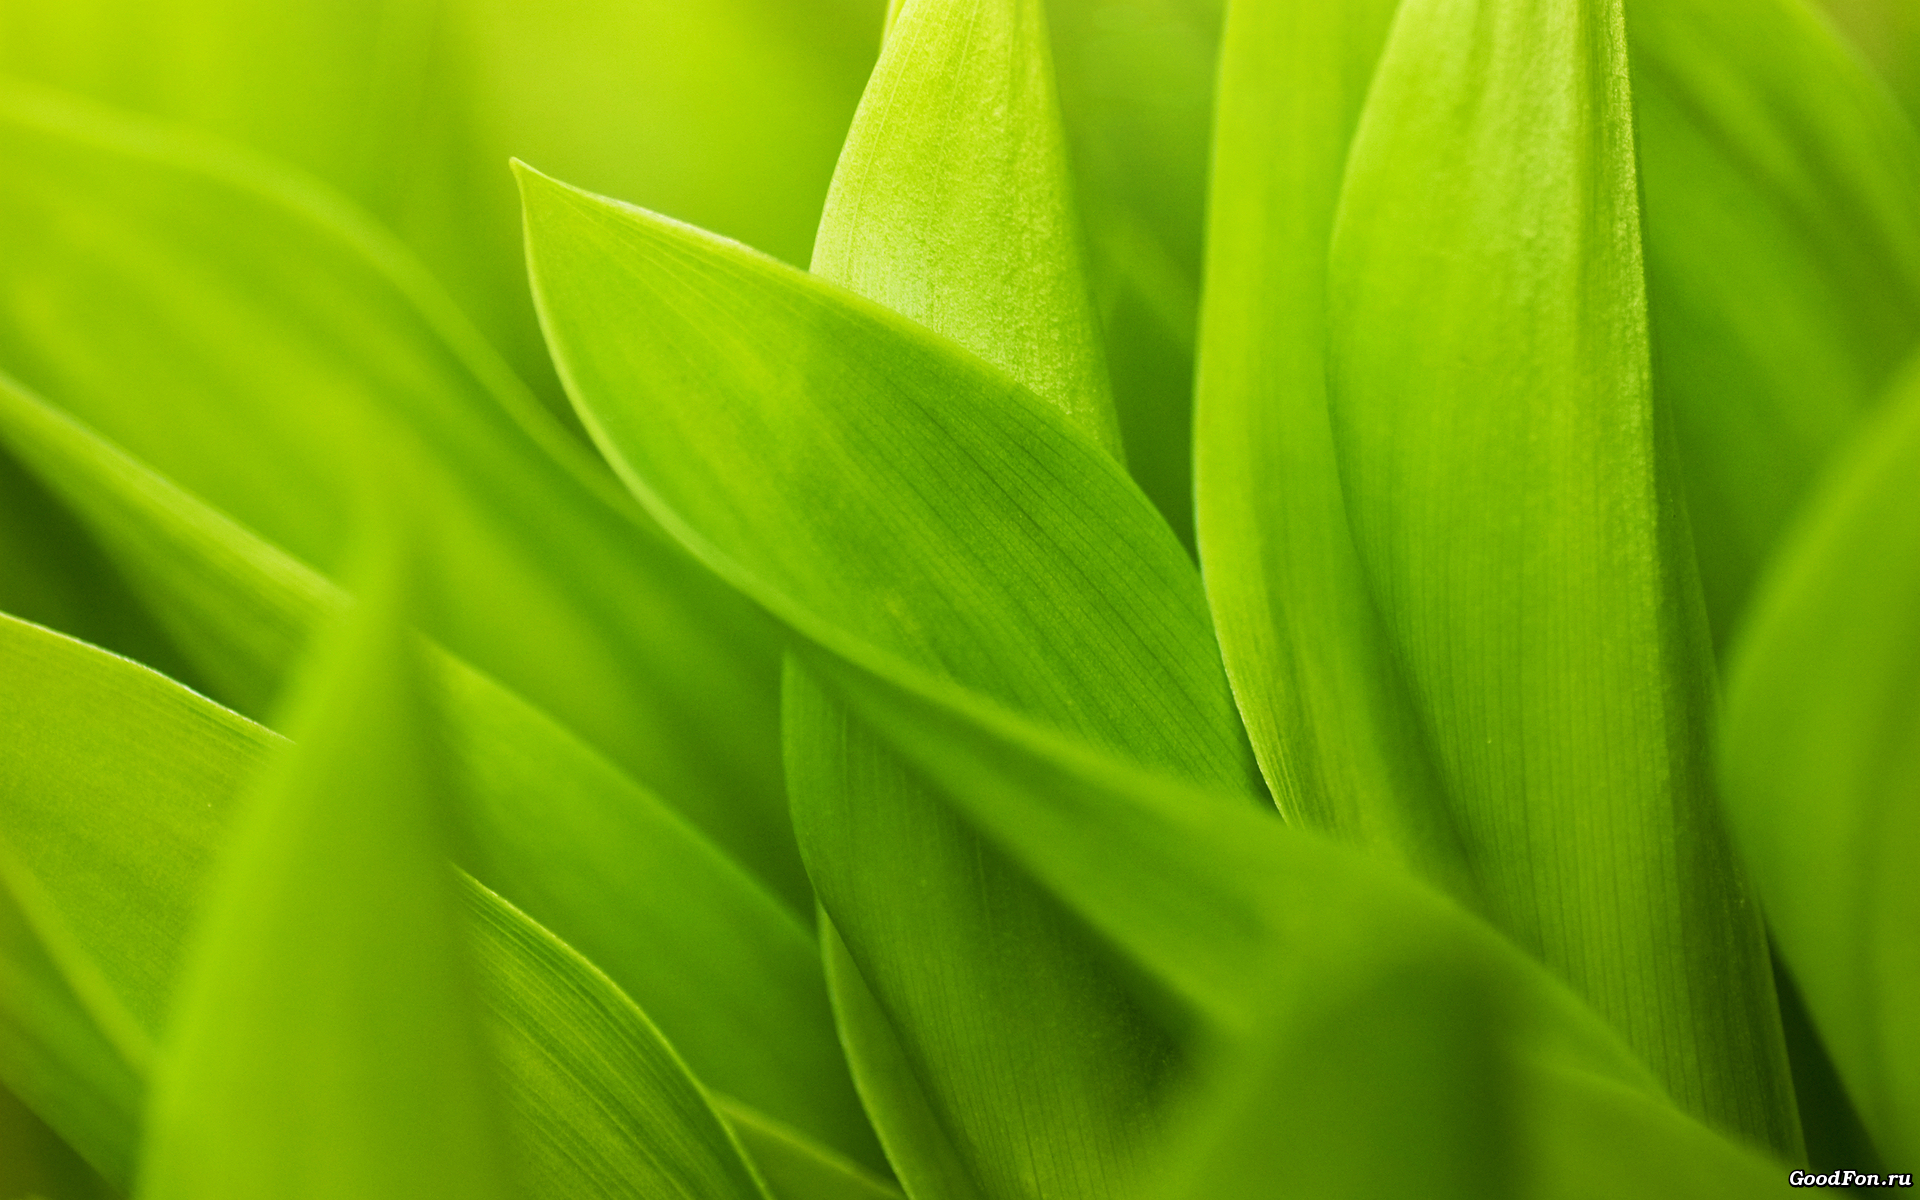 green leaves, download photo, background, texture